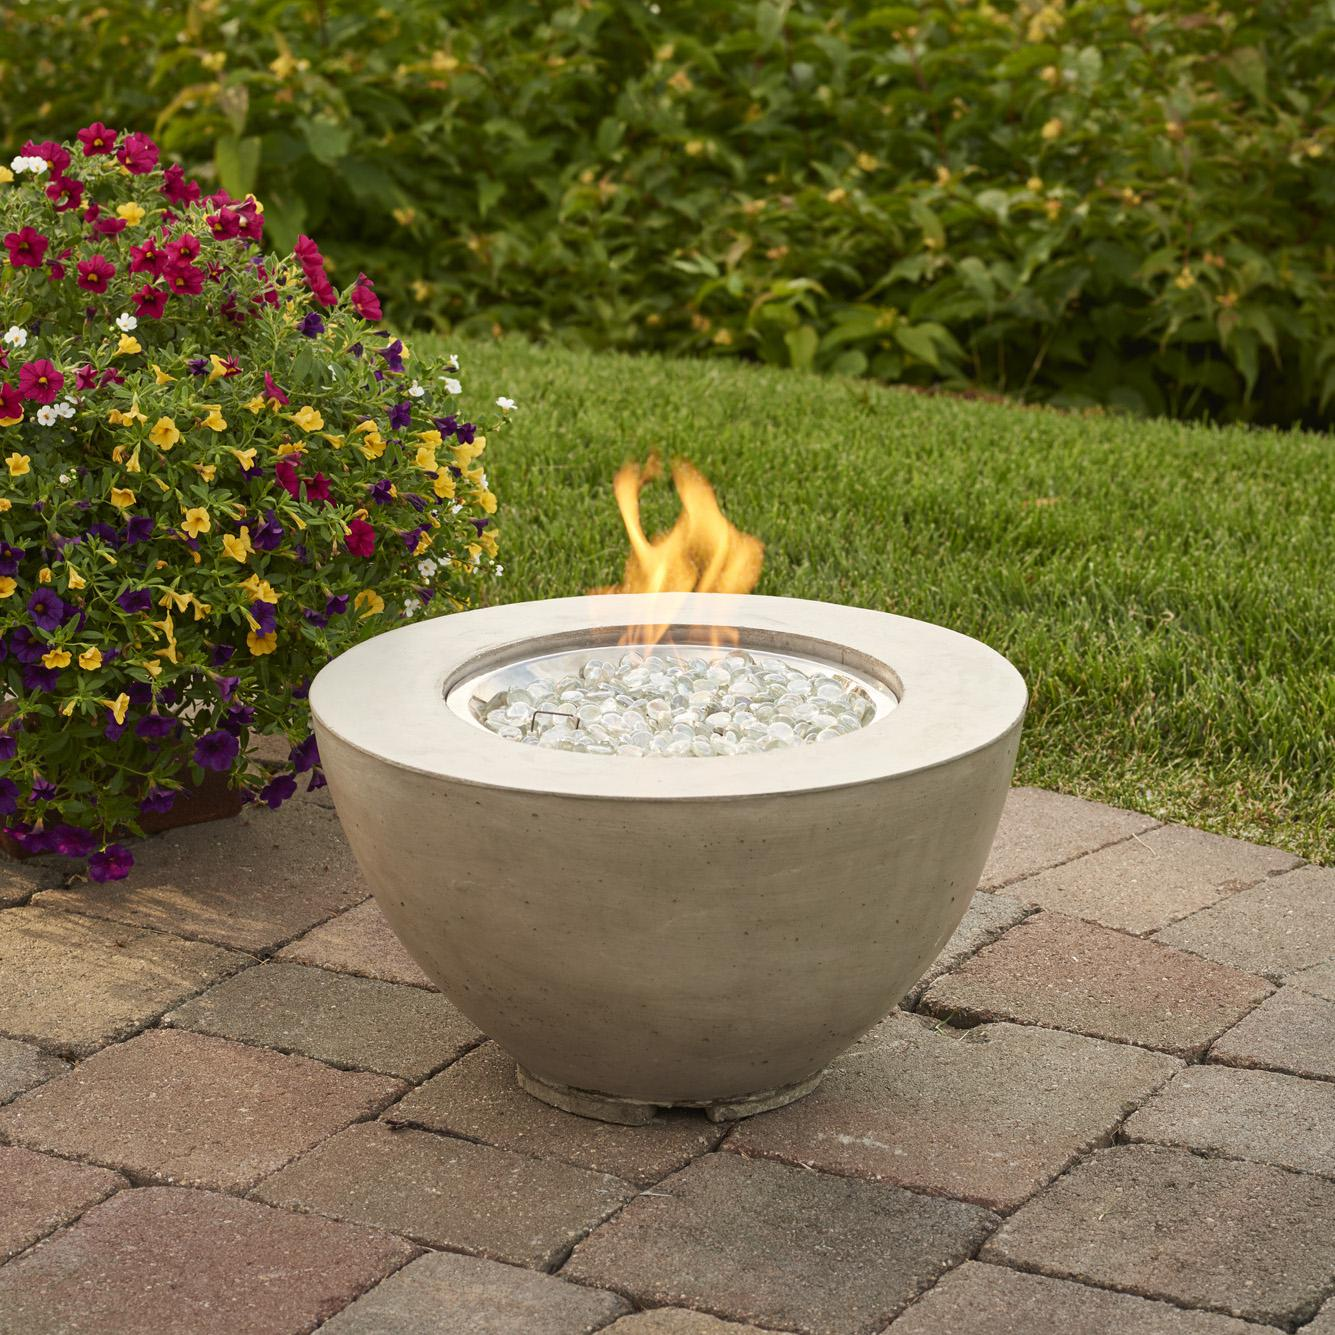 Outdoor GreatRoom Cove 19-Inch Round Natural Gas Fire Pit...